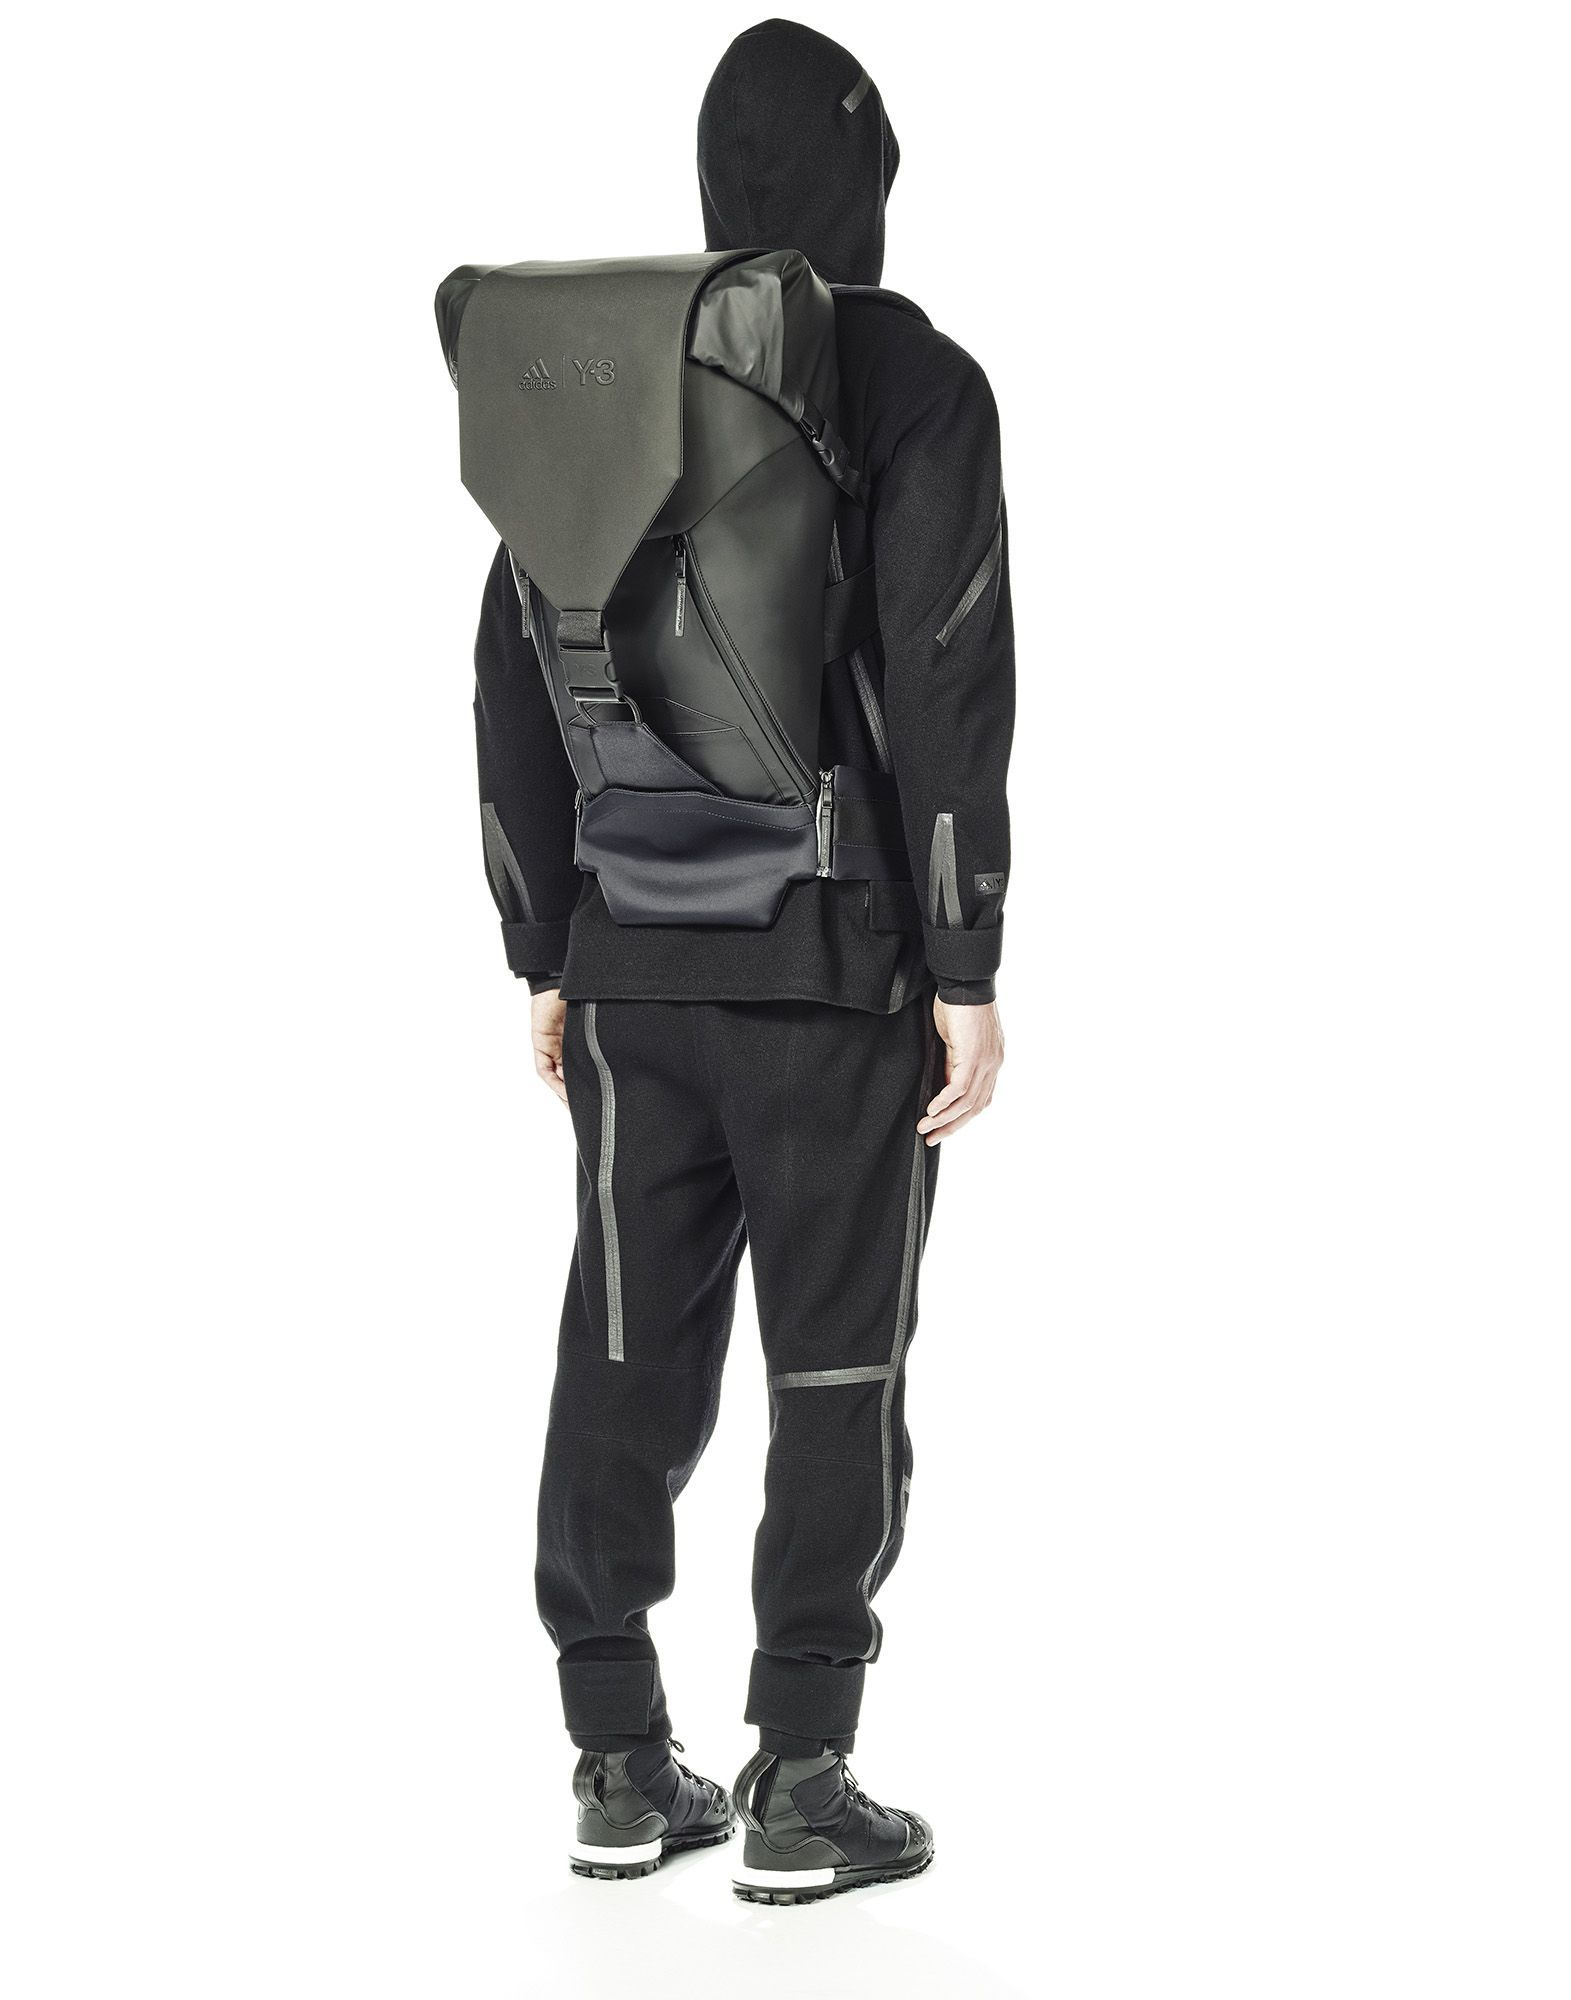 21st Century. The Future is Now! Y-3 SPORT BACKPACK TASCHEN unisex Y ... 84373a884c